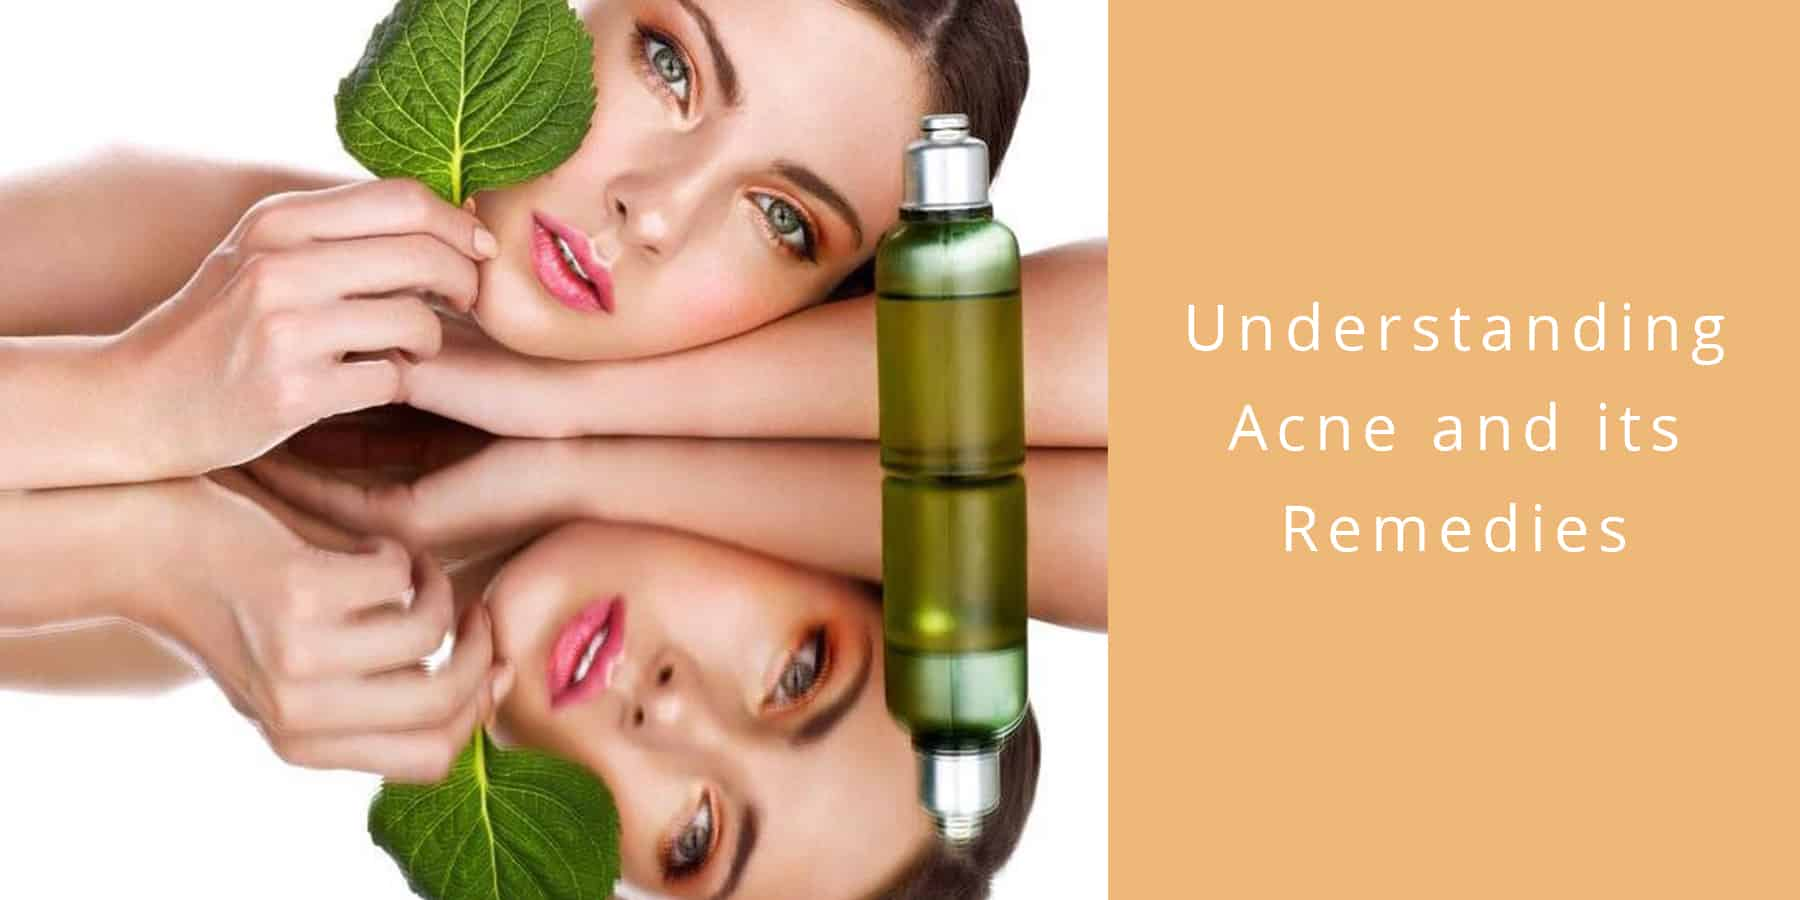 Understanding Acne and its Remedies